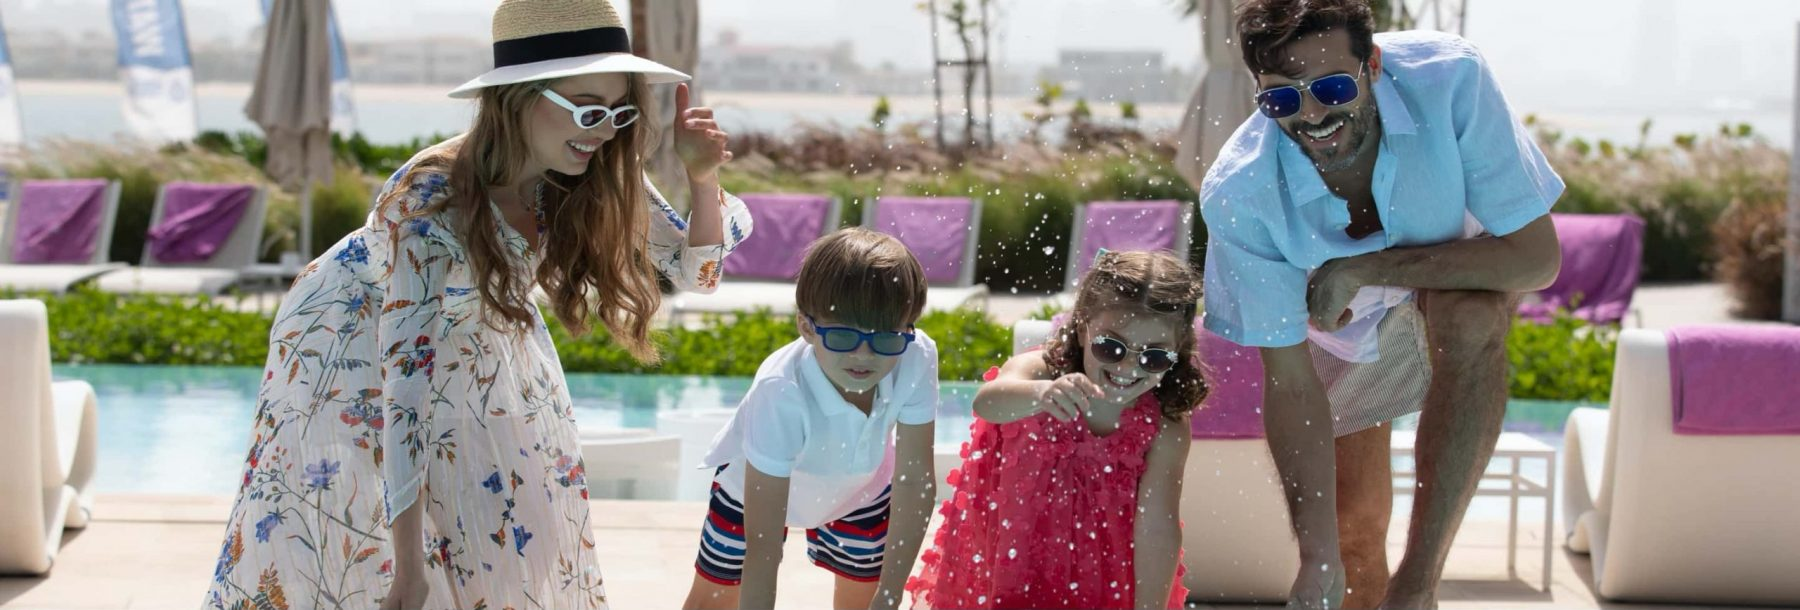 A young family enjoy life in a sunny waterfront apartment complex